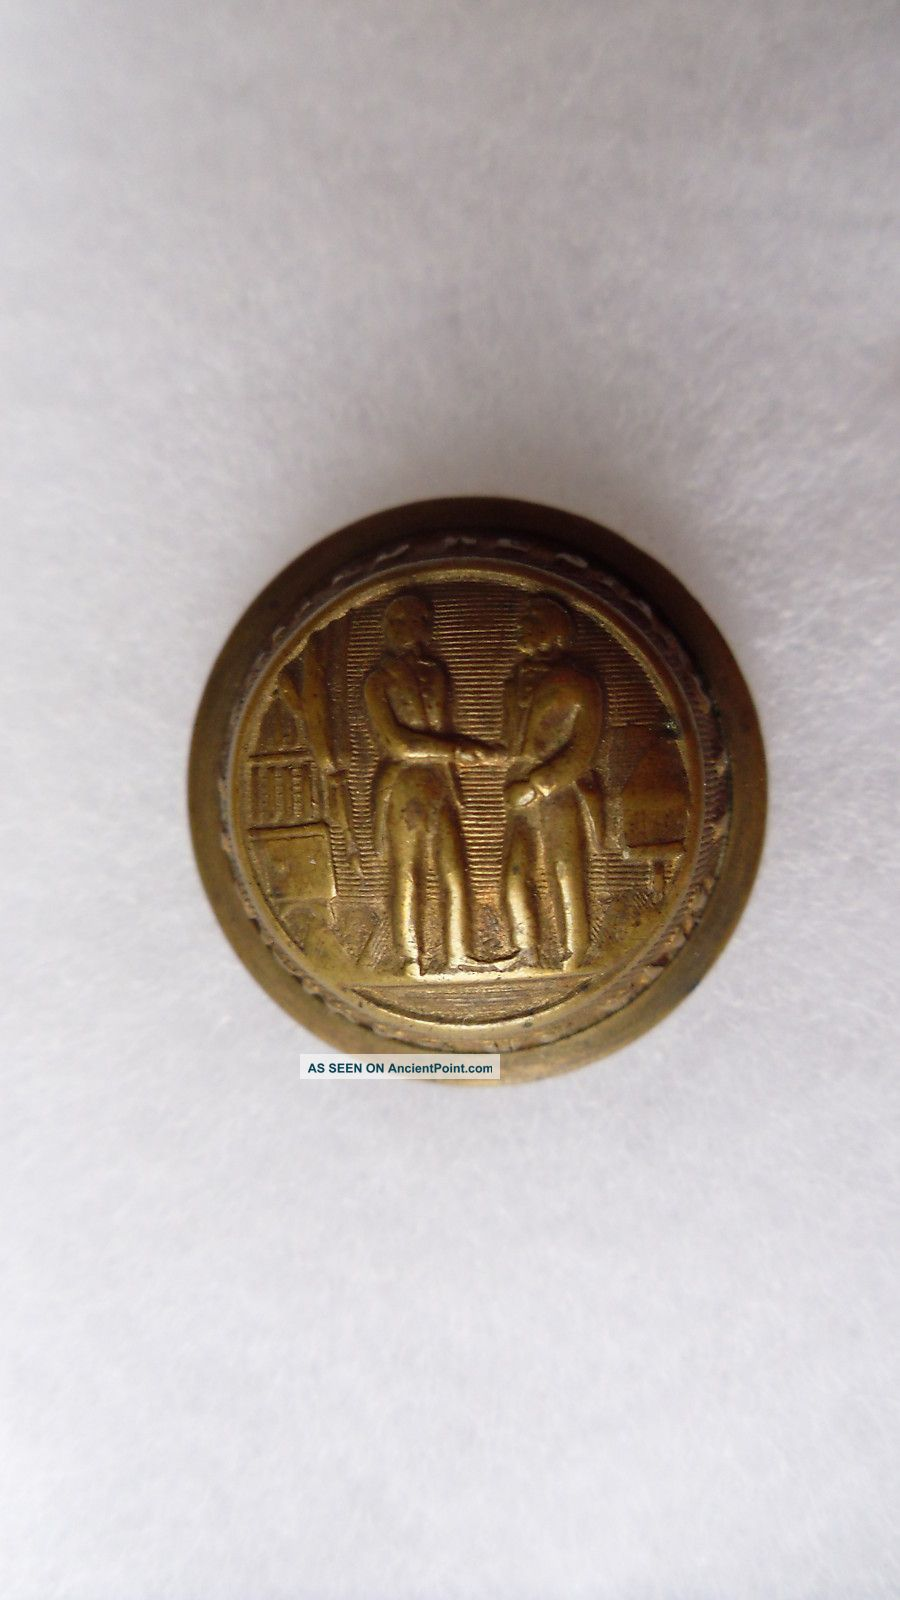 Antique Kentucky State Seal Coat Button M C Lilley & Co Columbus Ohio 23 Mm Buttons photo